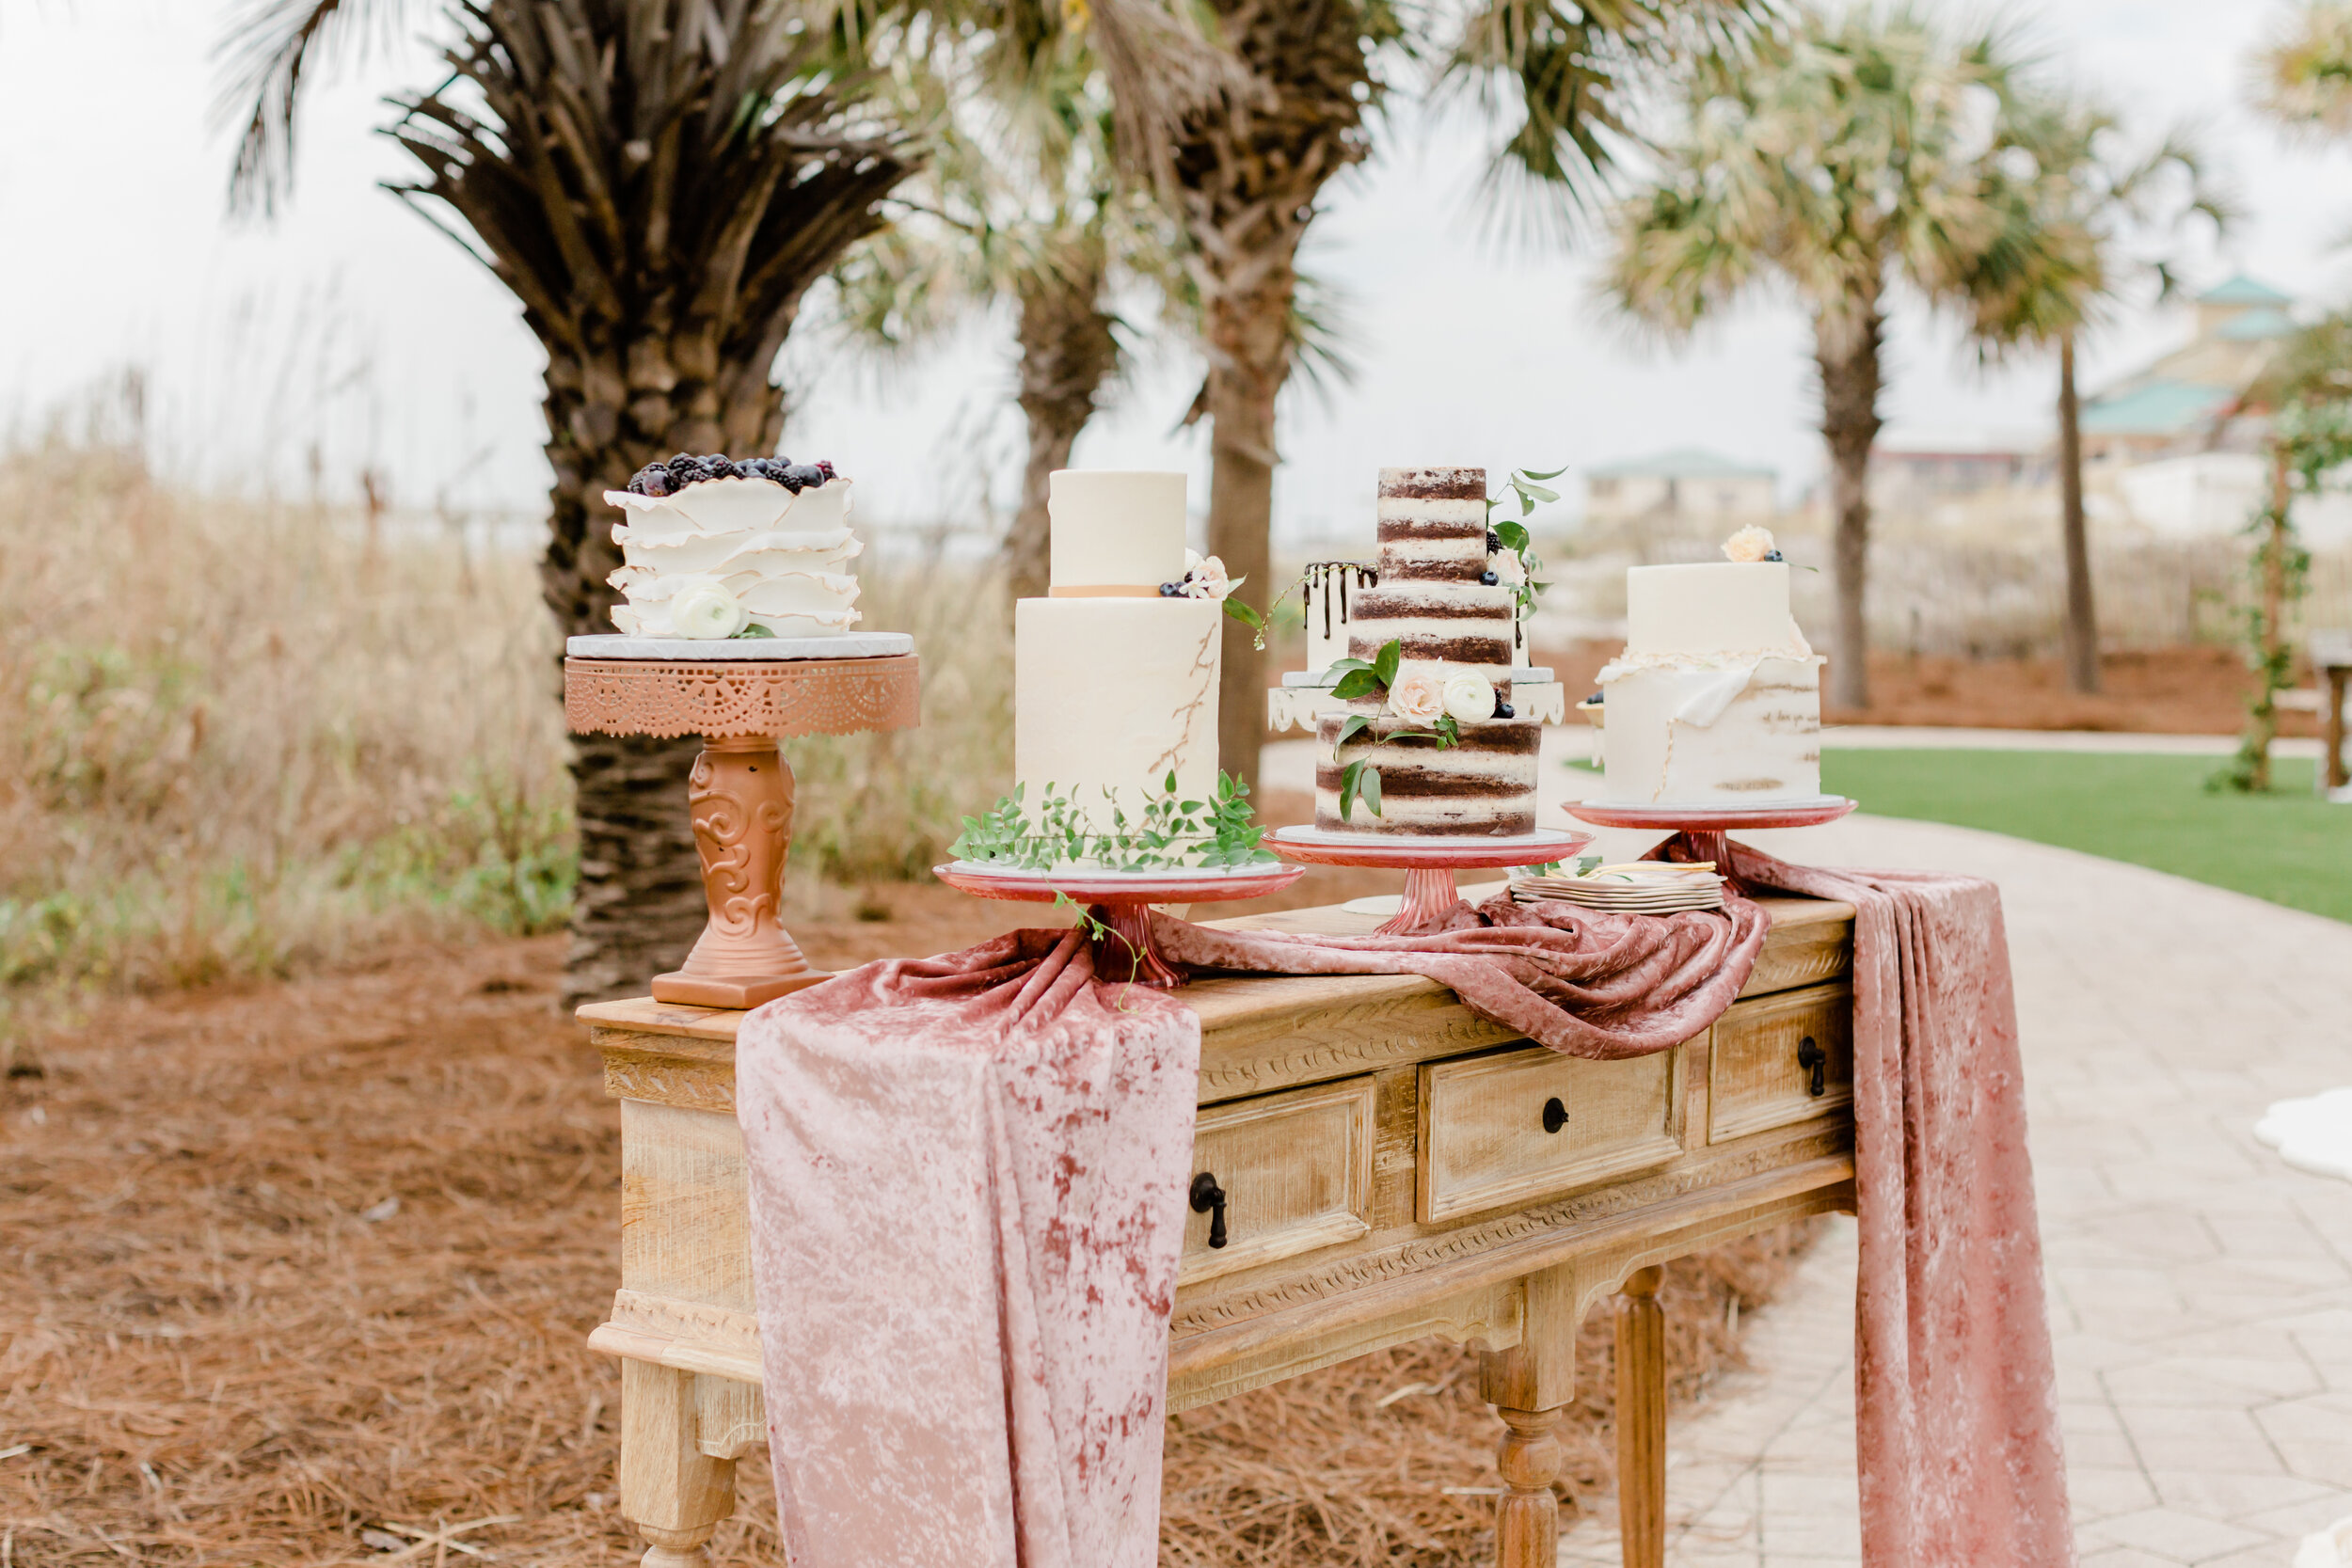 gorgeous cake stands and modern artsy wedding cake inspirations on vintage wooden table and silk velvet table runners